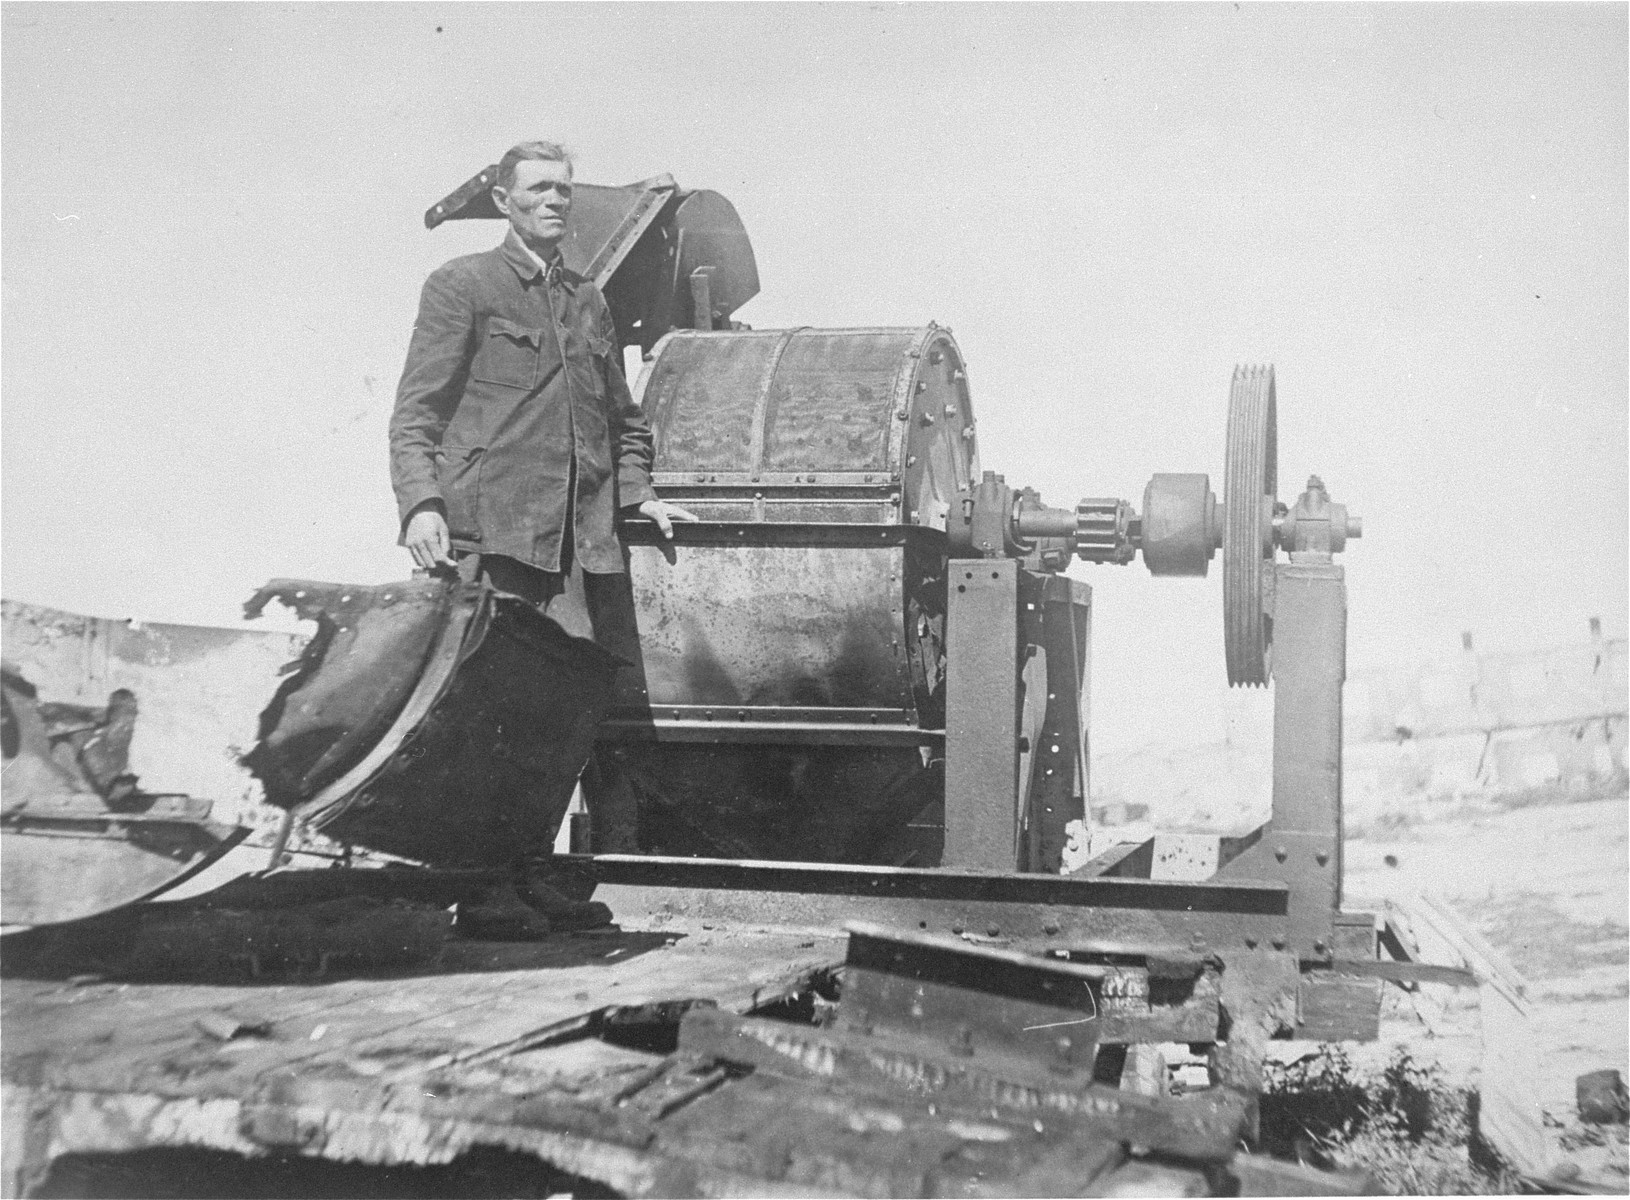 Moses Korn, a Jewish prisoner forced to work in Sonderkommando 1005 unit, poses next to a bone crushing machine in the Janowska concentration camp.  This photograph ws taken soon after liberation for the Extraordinary Commission or the Red Army.